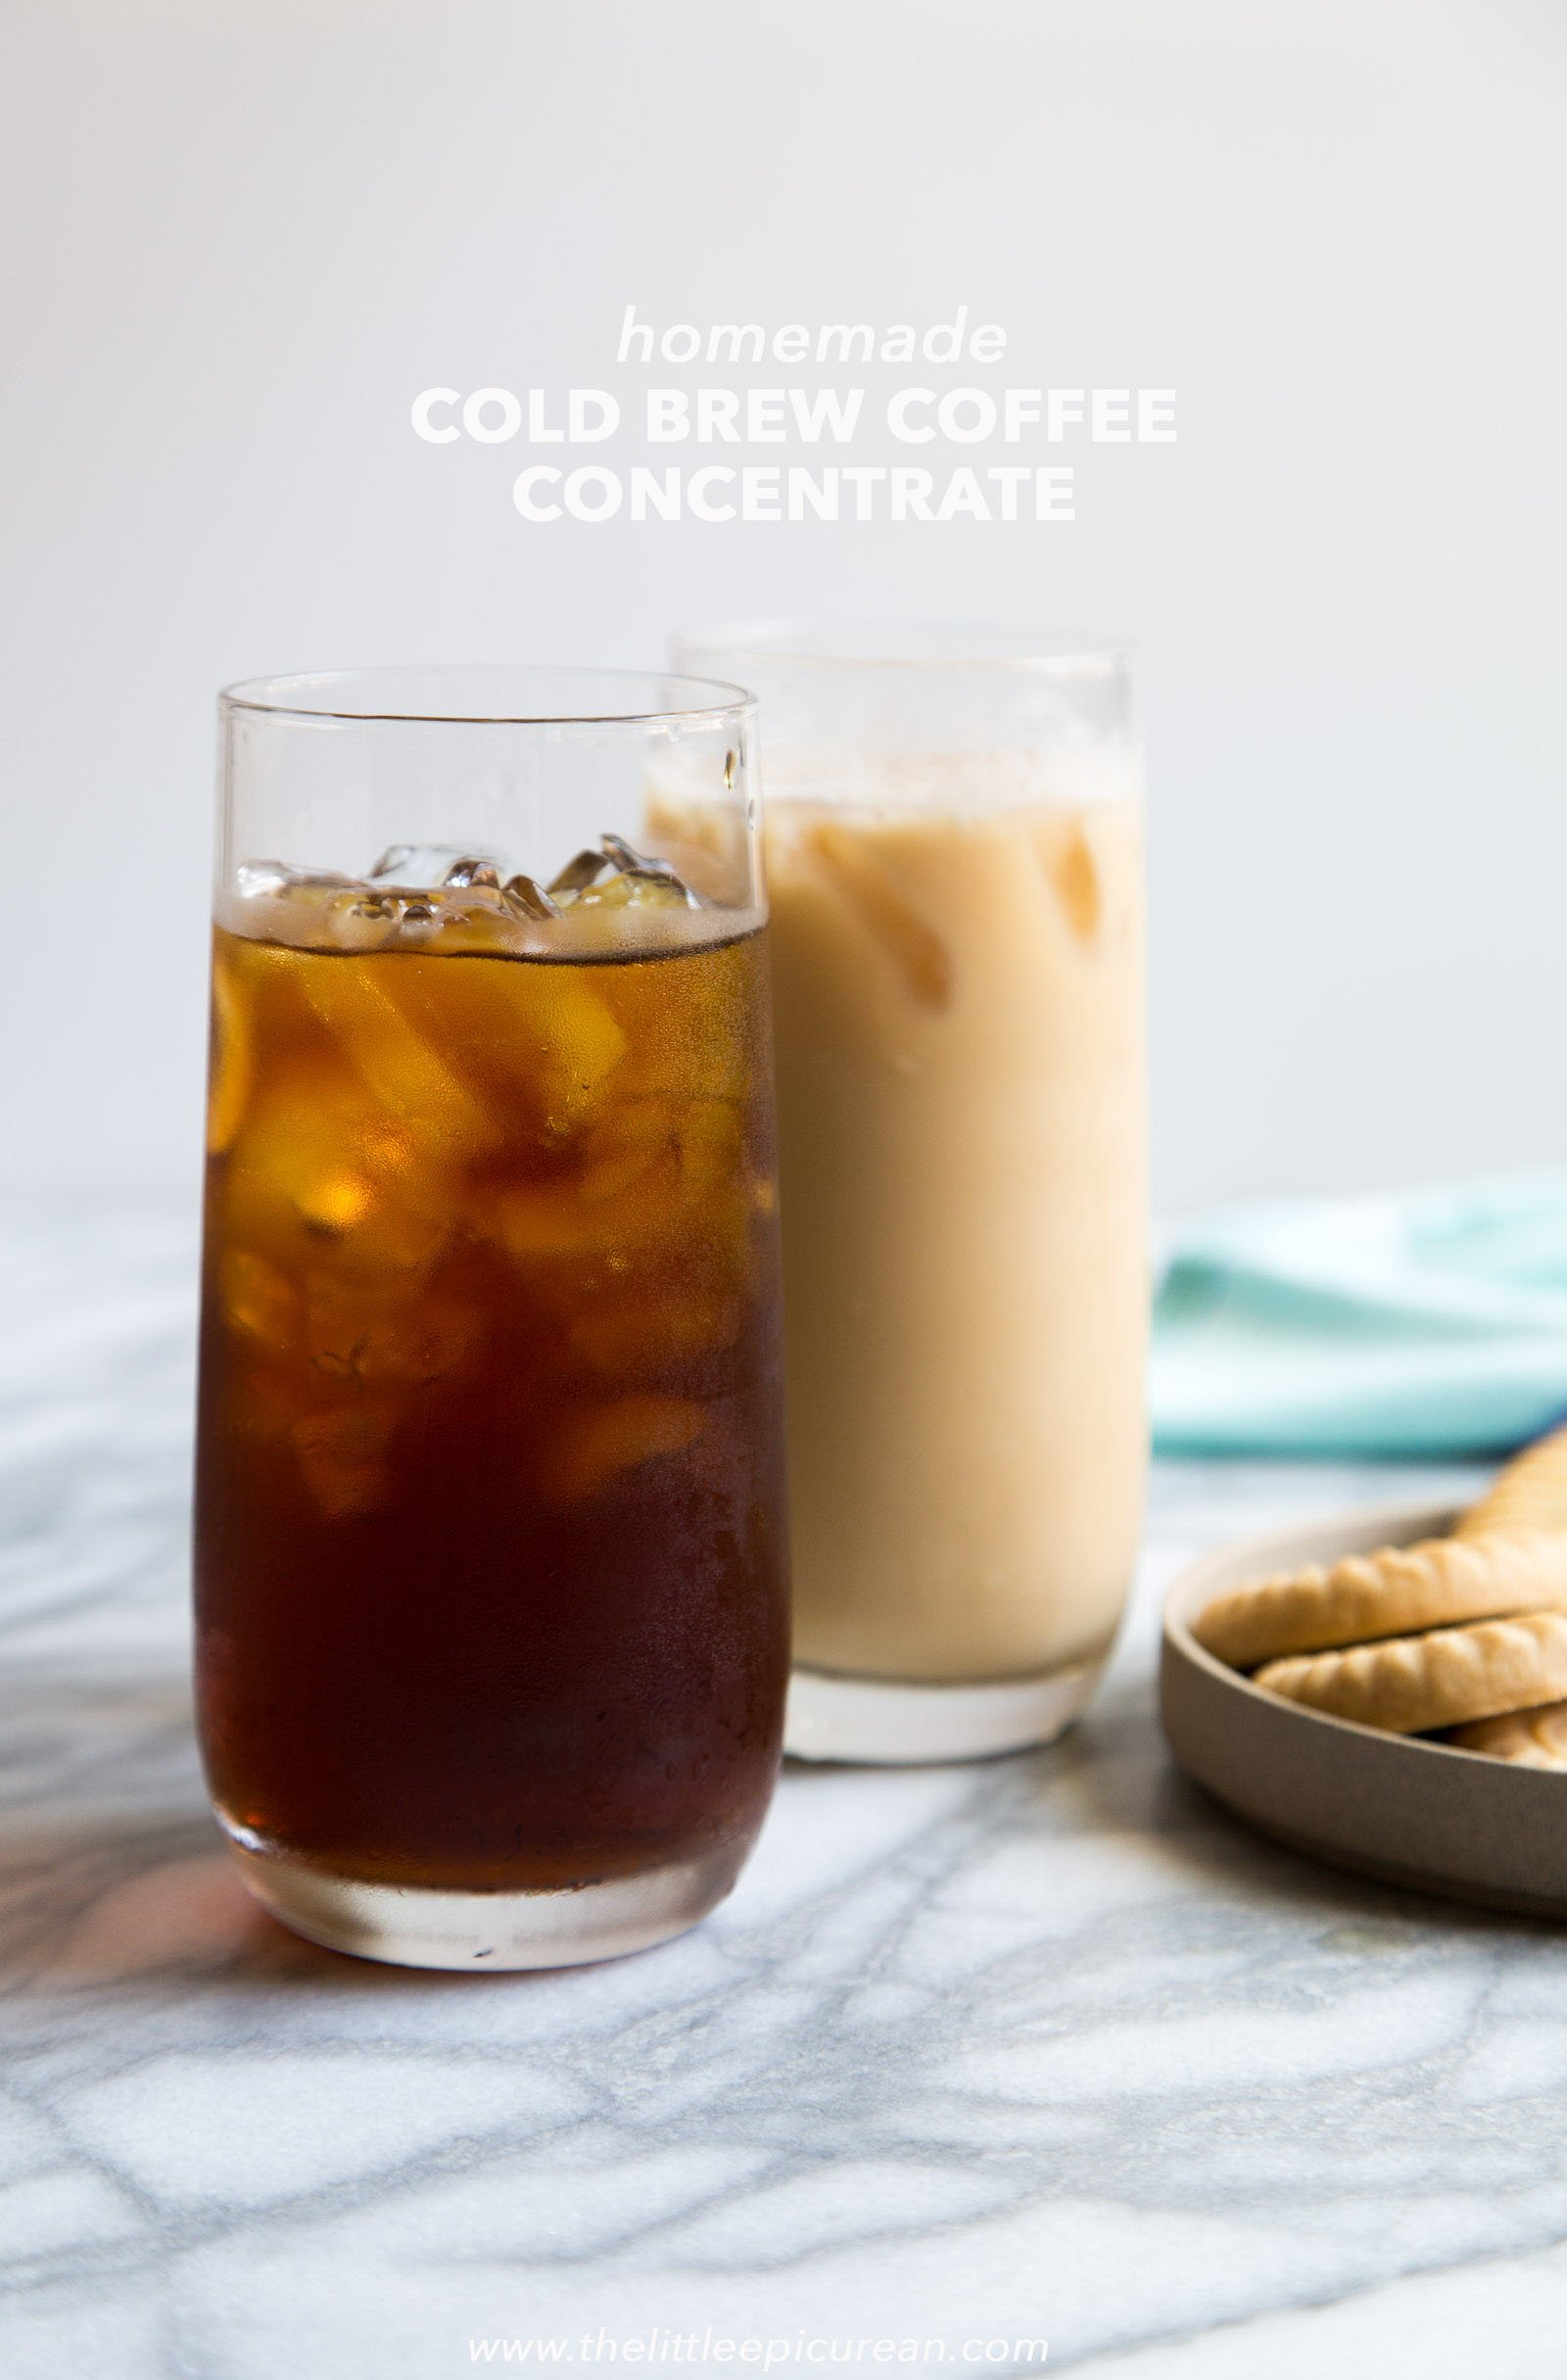 Homemade Cold Brew Coffee Concentrate